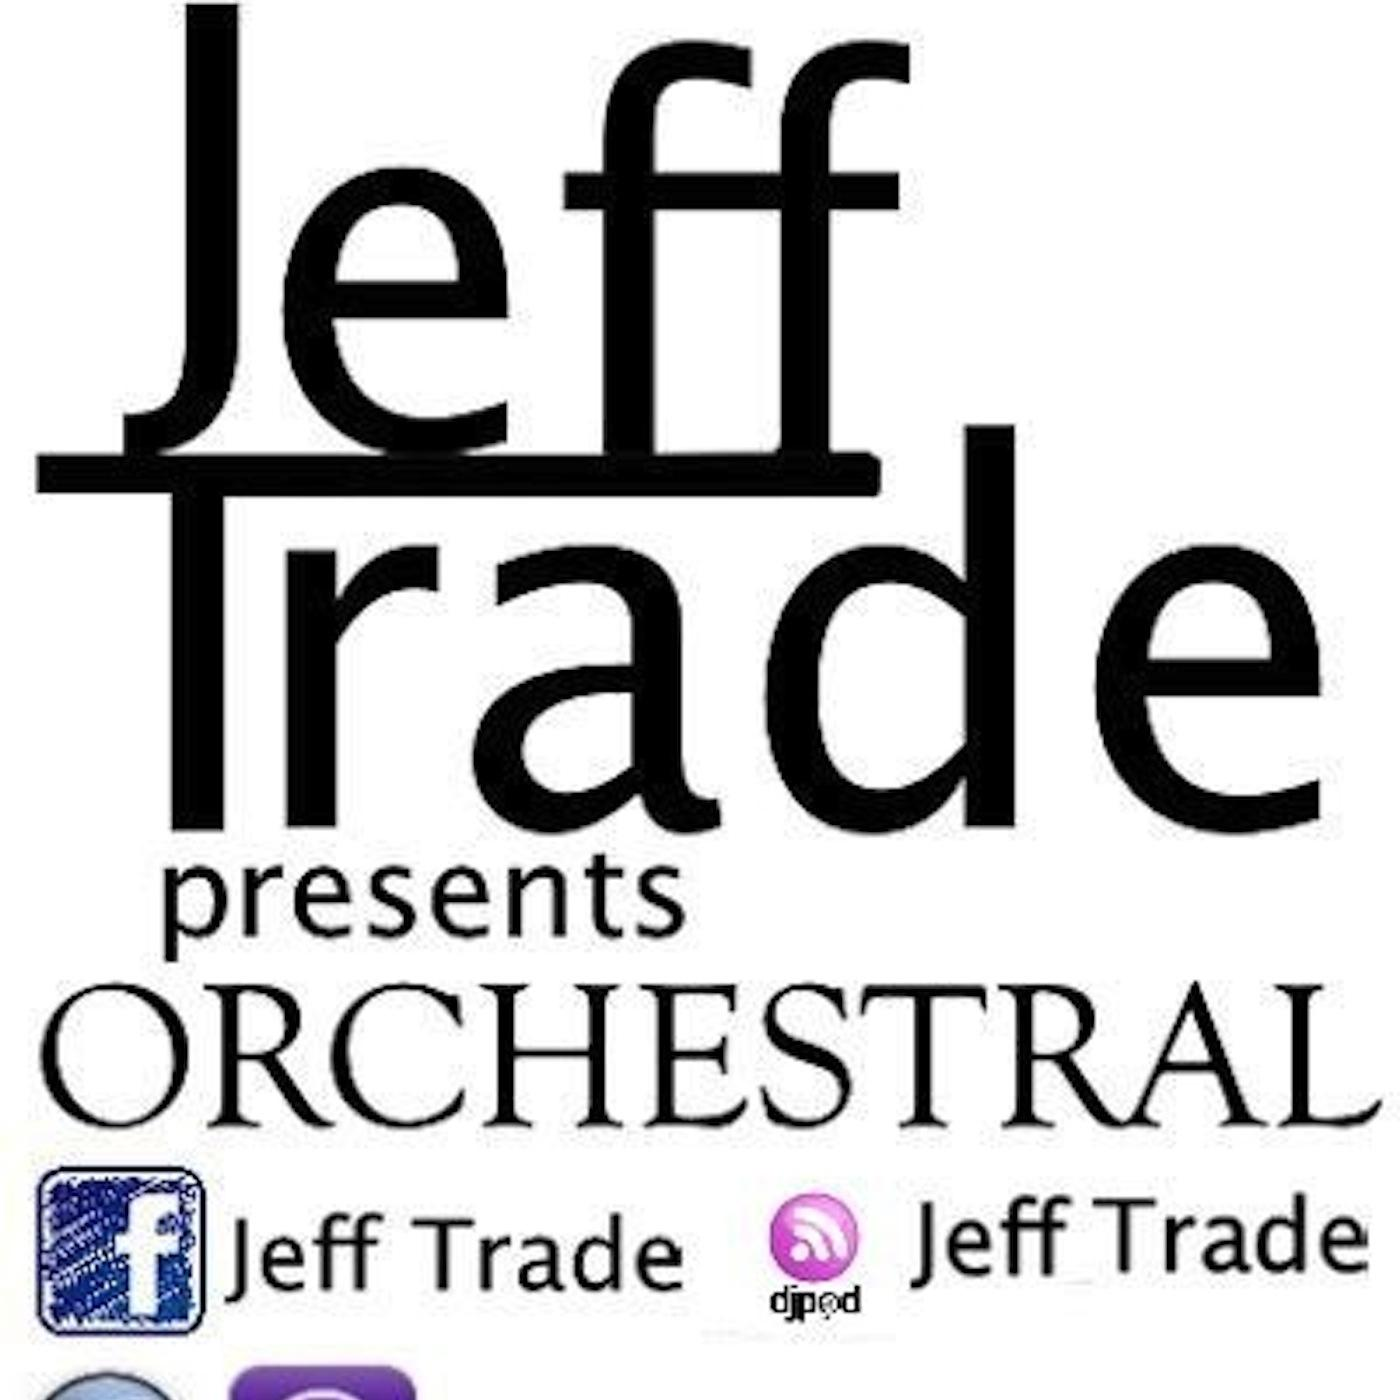 Jeff Trade presents ORCHESTRAL